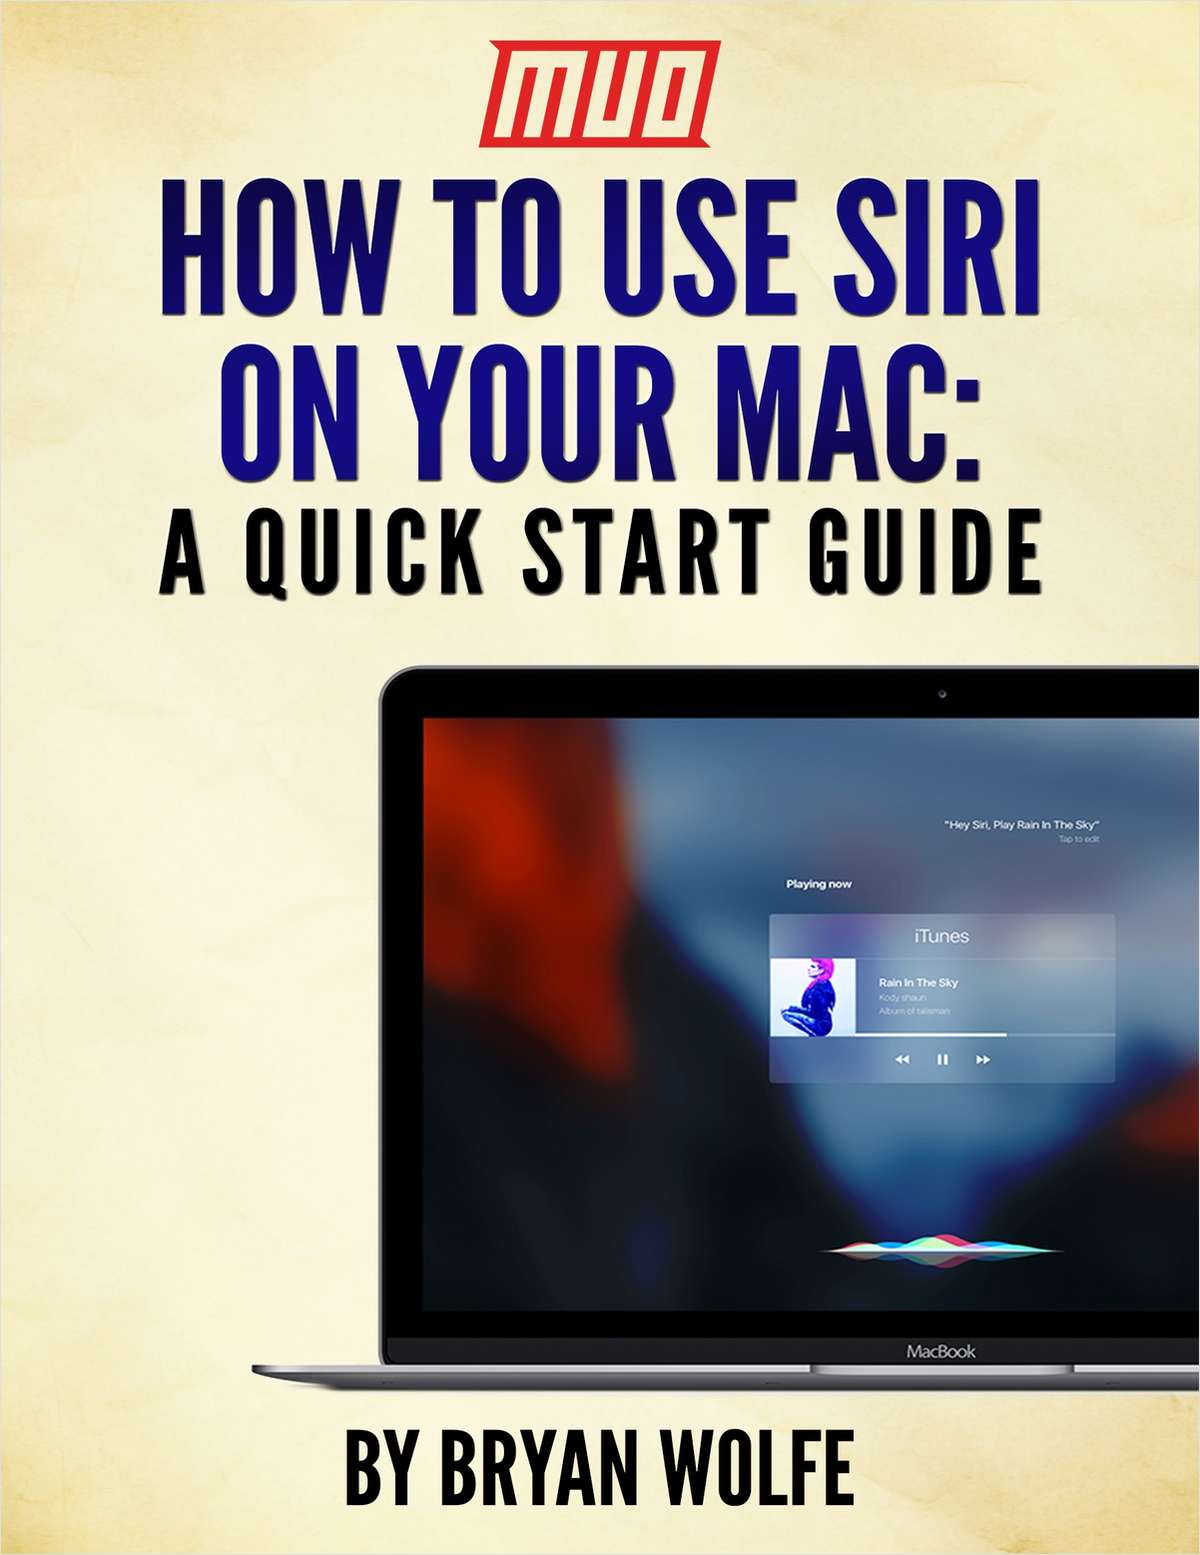 How to Use Siri on Your Mac - A Quick Start Guide